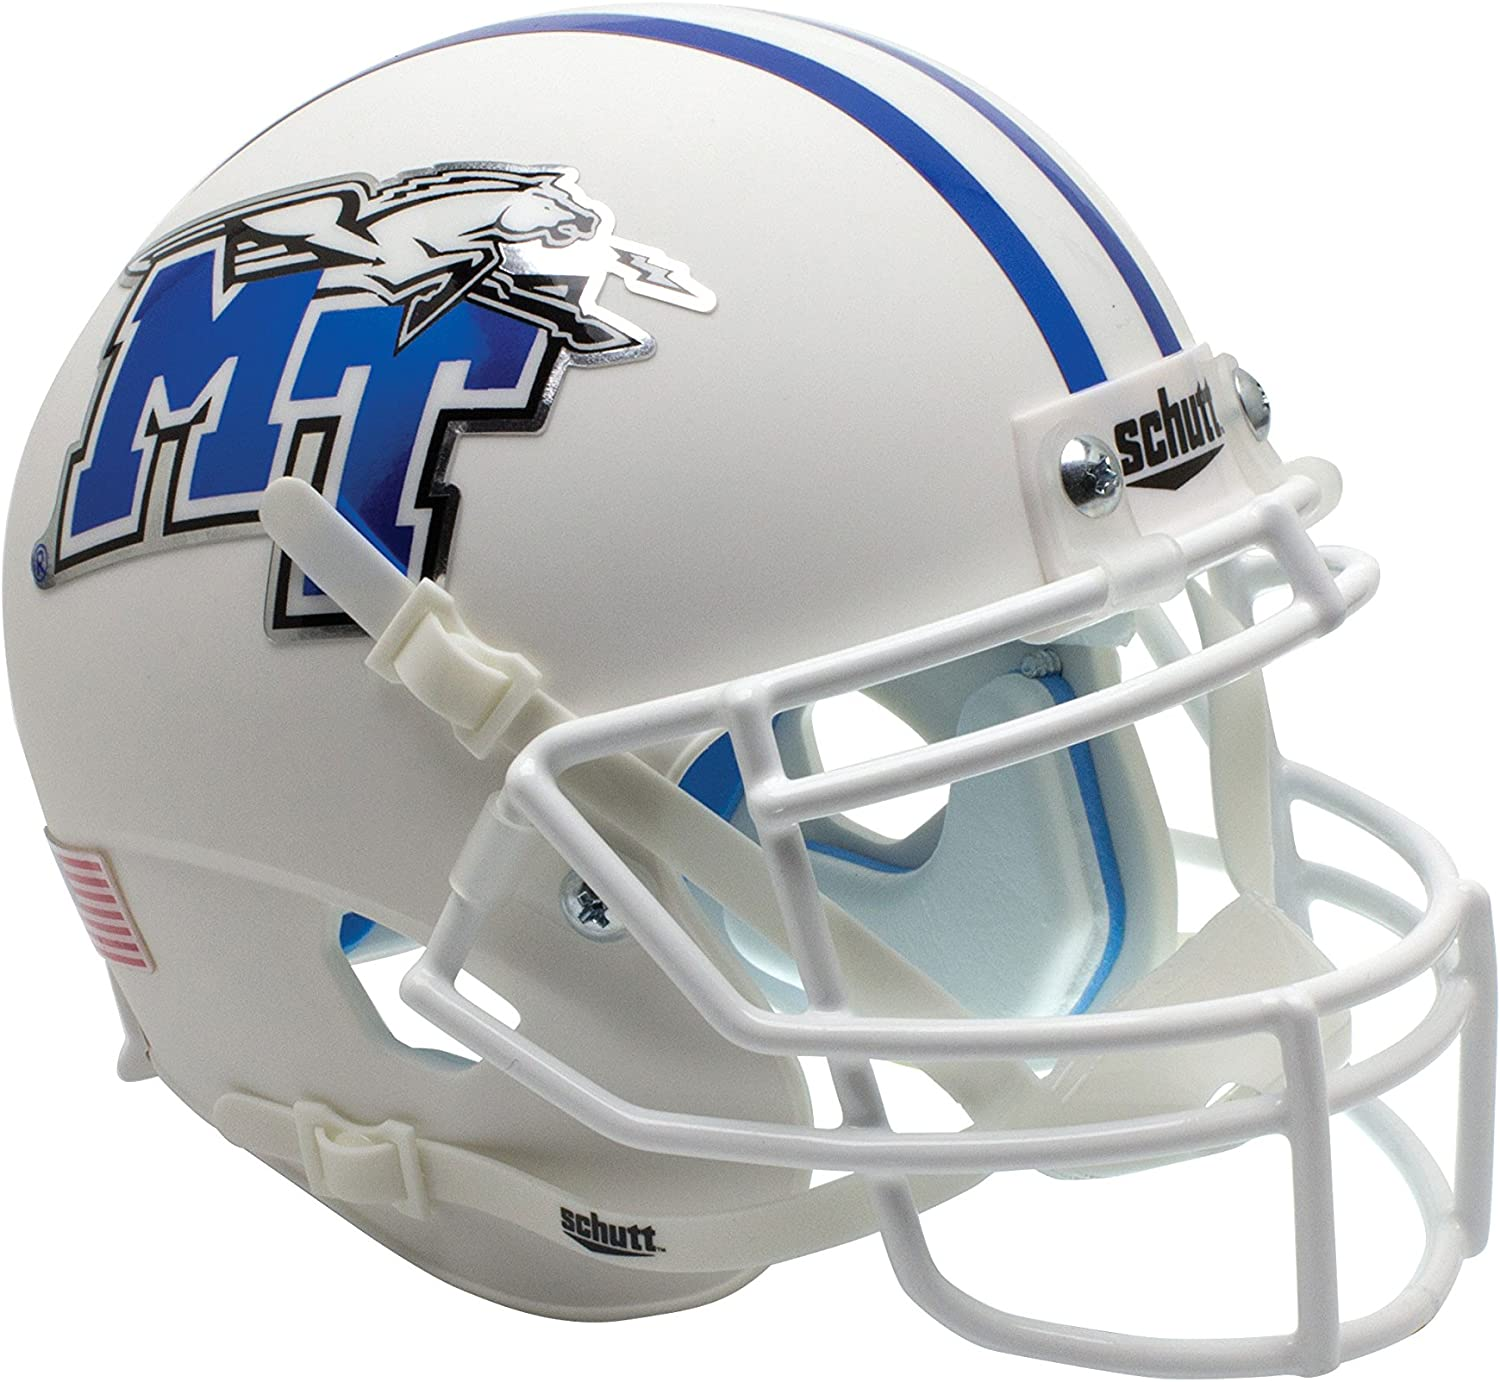 Schutt NCAA Middle Tennessee State Blue Raiders Authentic XP Football Helmet